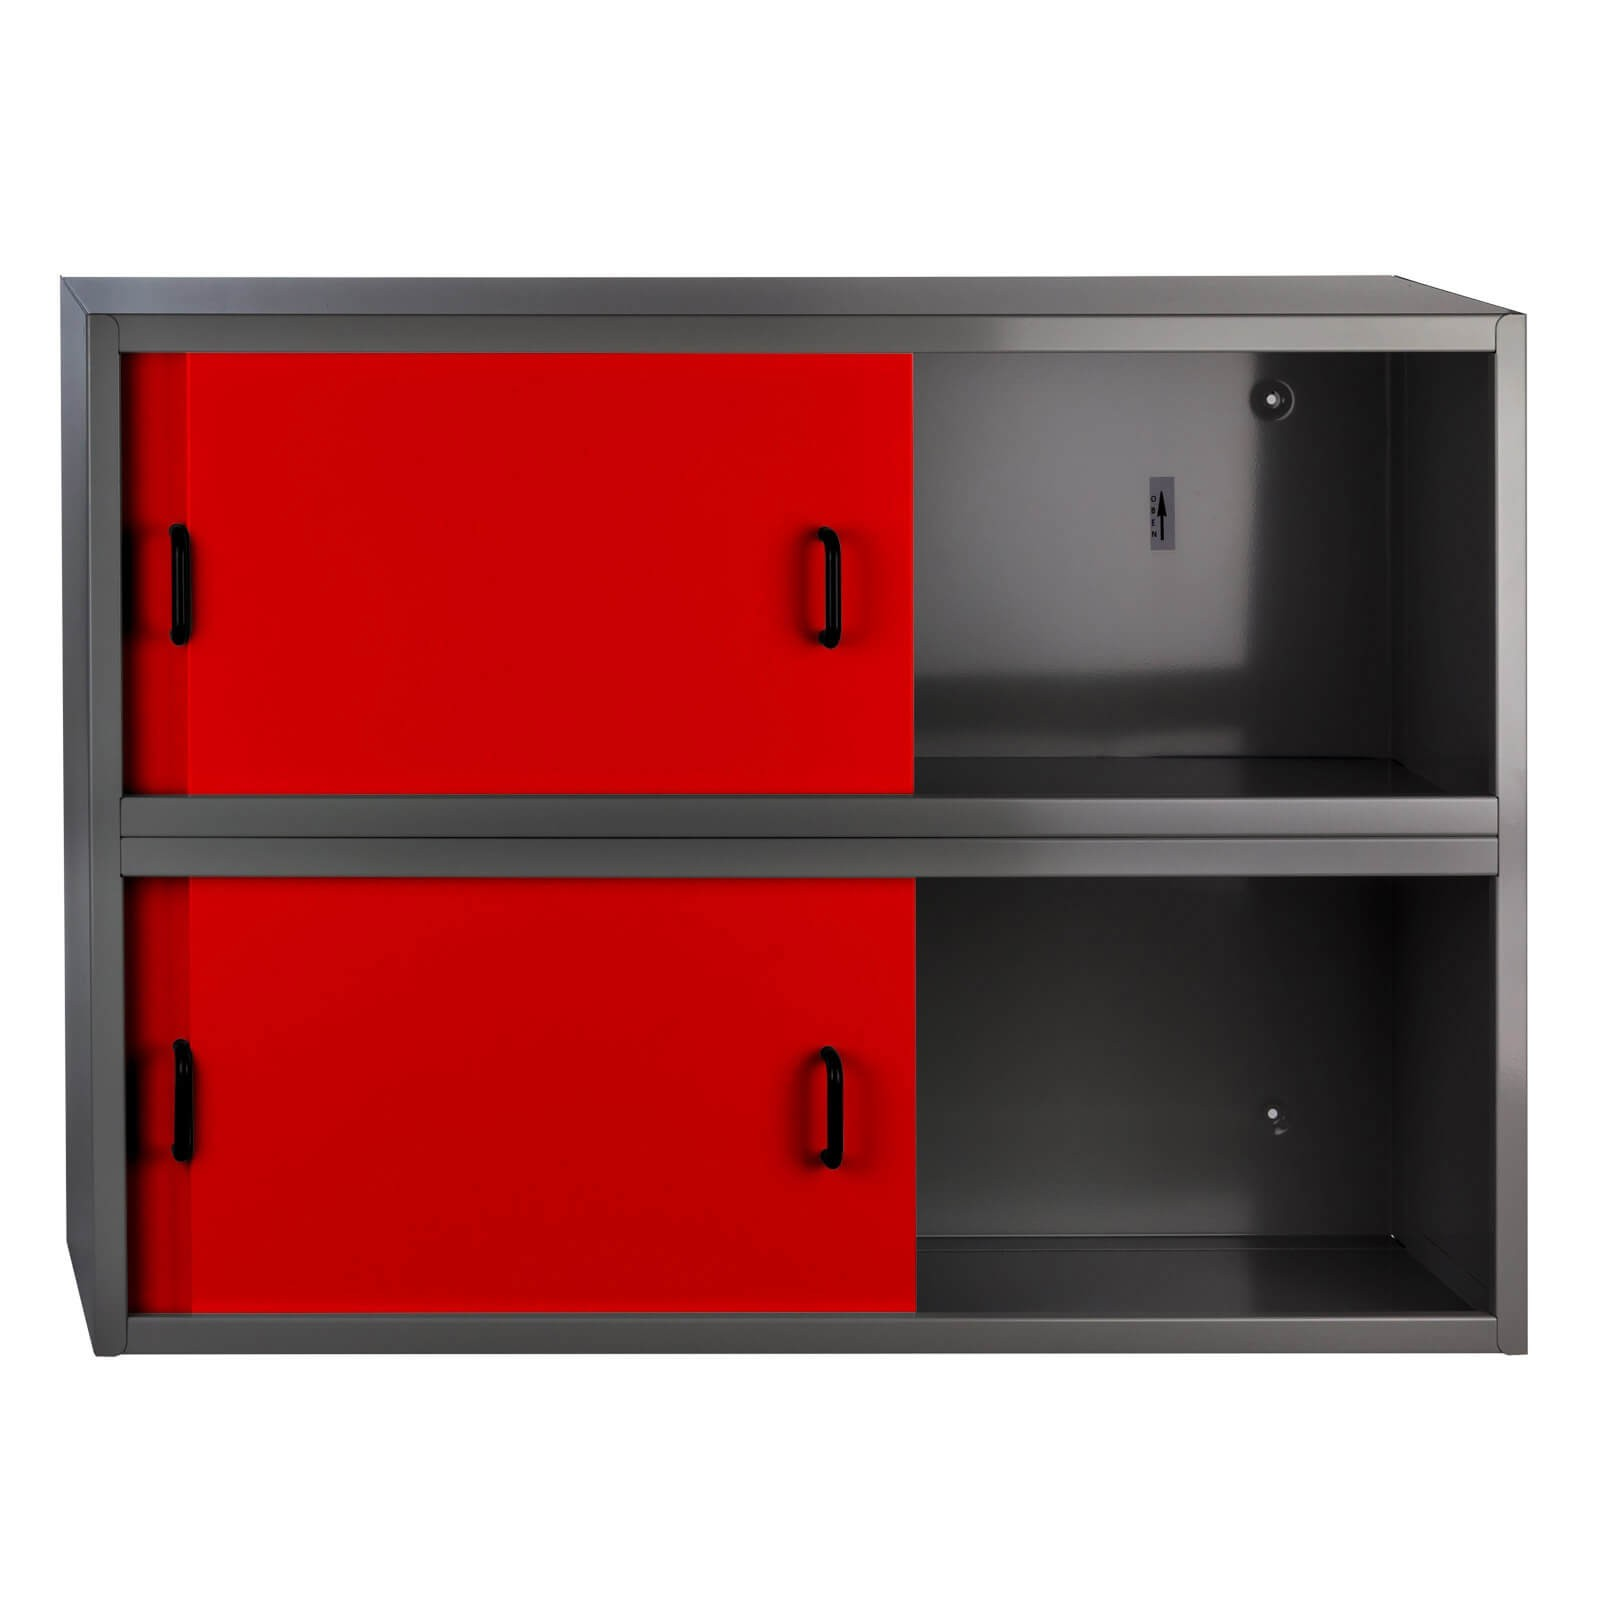 h ngeschrank wandschrank werkstattschrank metallschrank 4 schiebet ren rot anth ebay. Black Bedroom Furniture Sets. Home Design Ideas